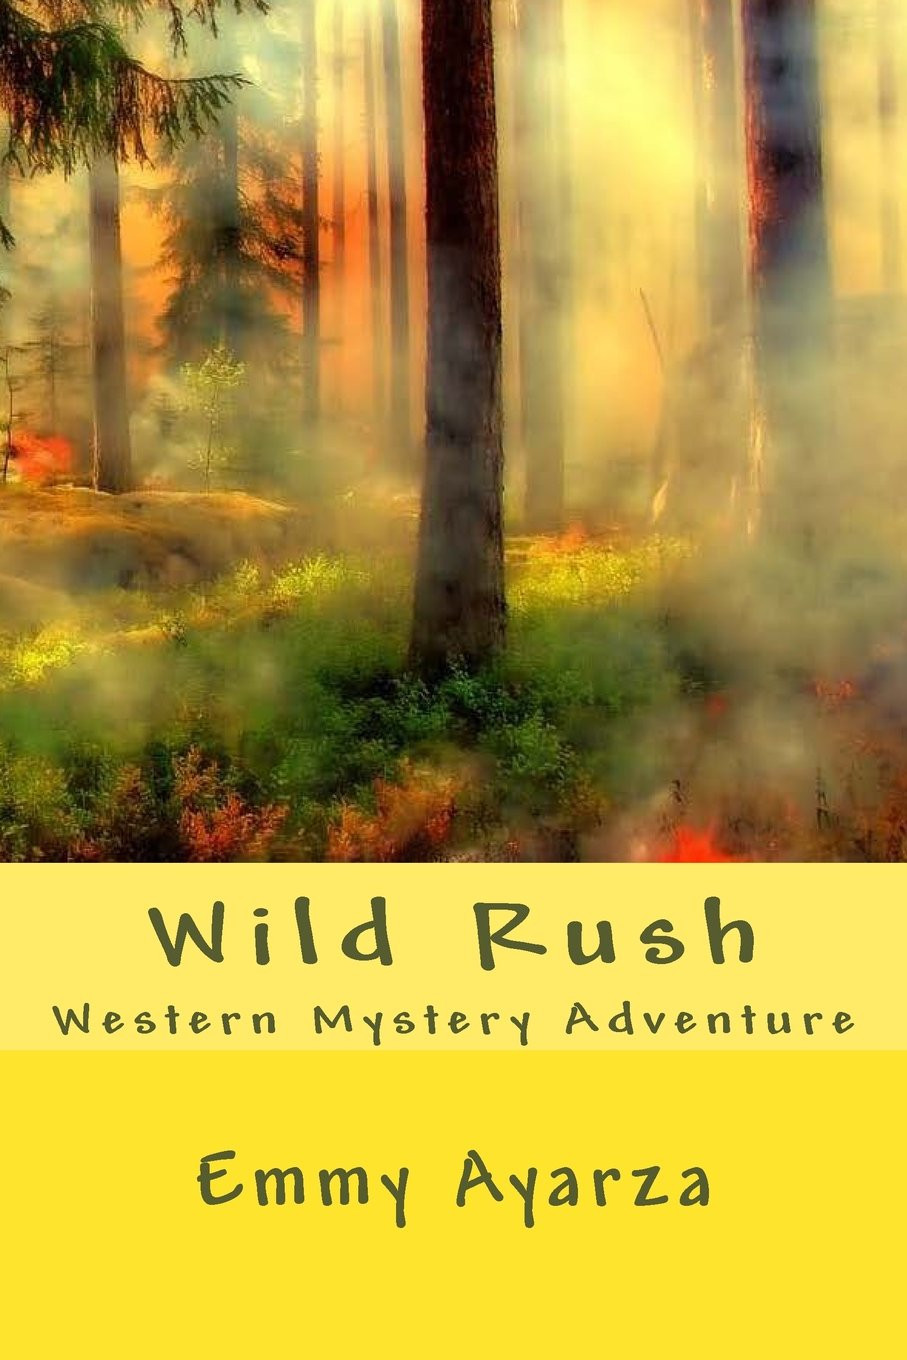 Wild Rush Western Mystery Adventure by Emmy Ayarza